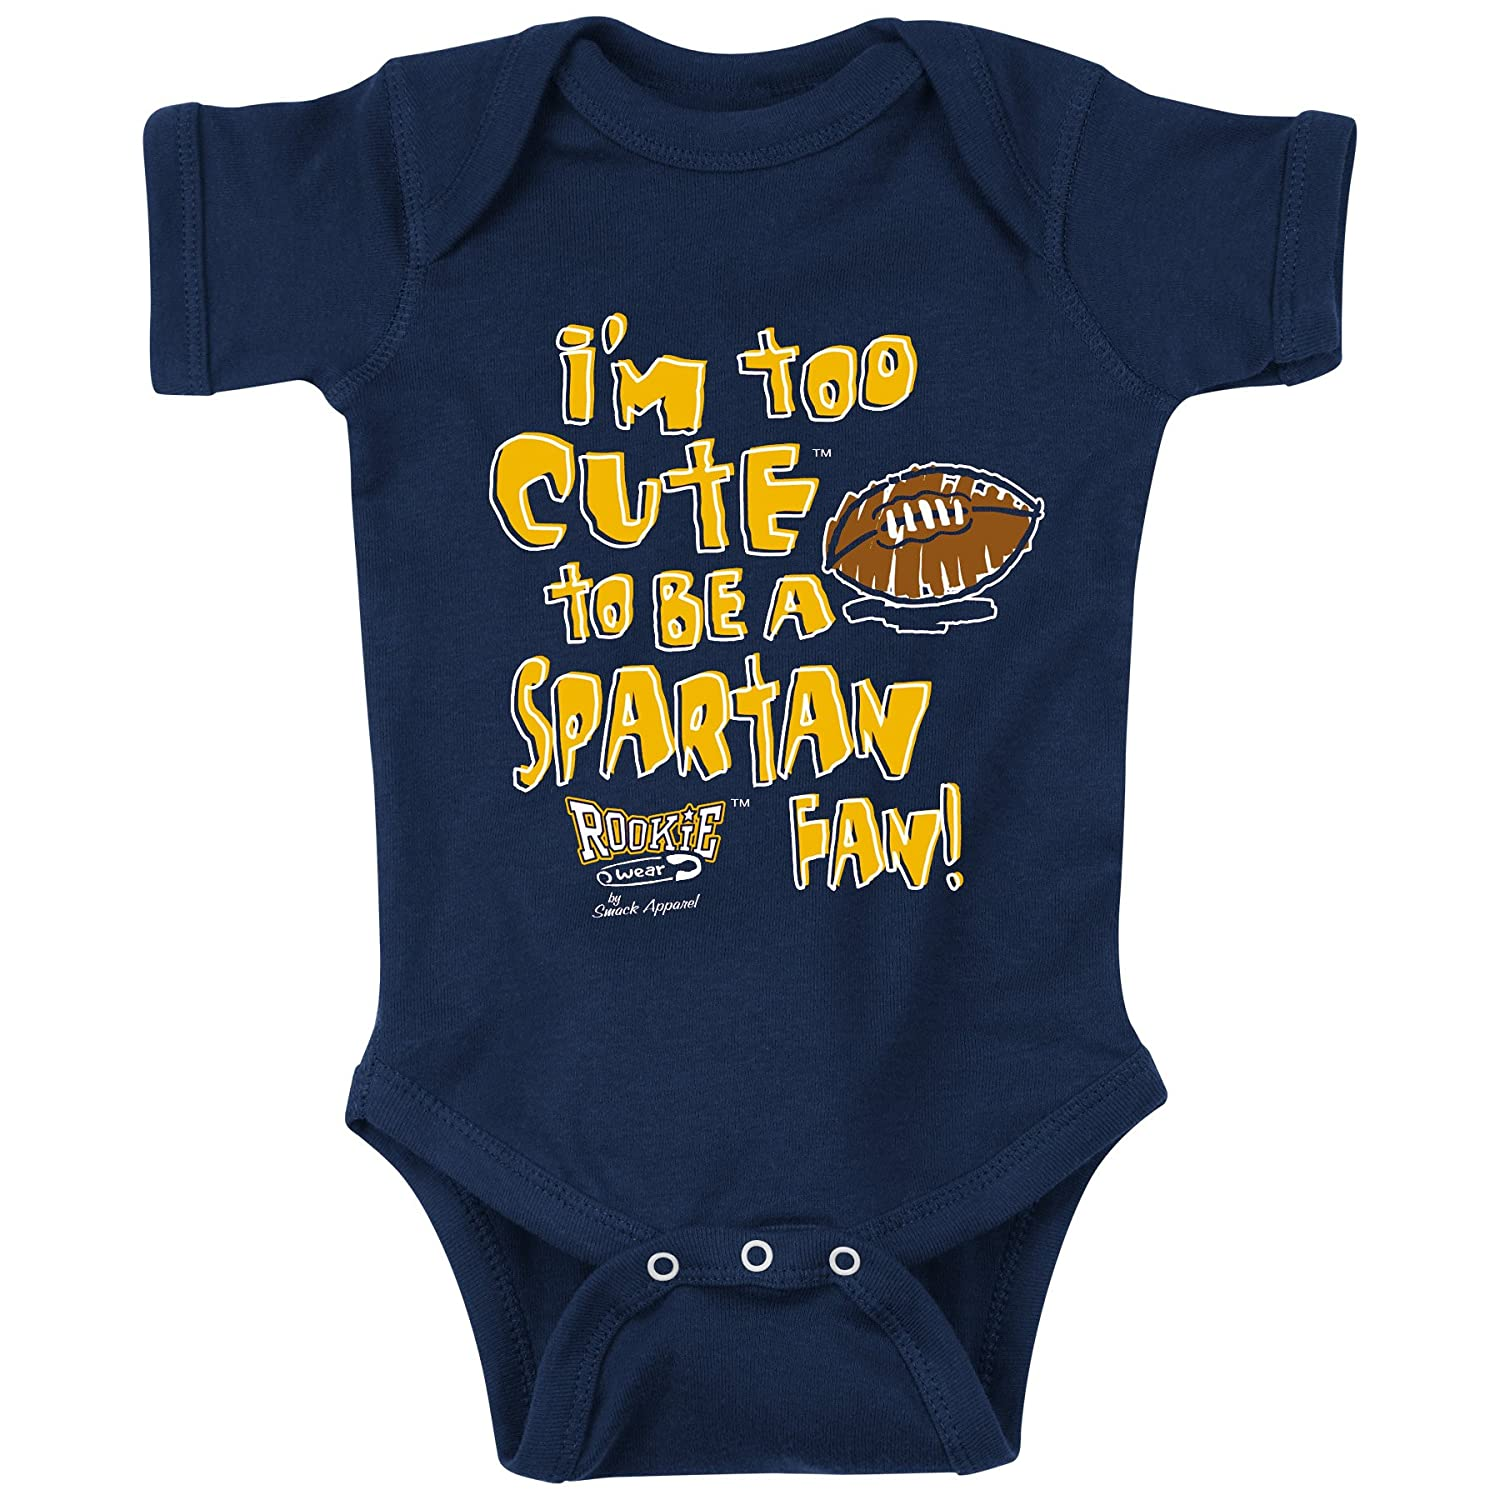 6M Michigan Football Fans NB-4T Too Cute to Be a Spartan Fan Onesie /& Toddler Tee